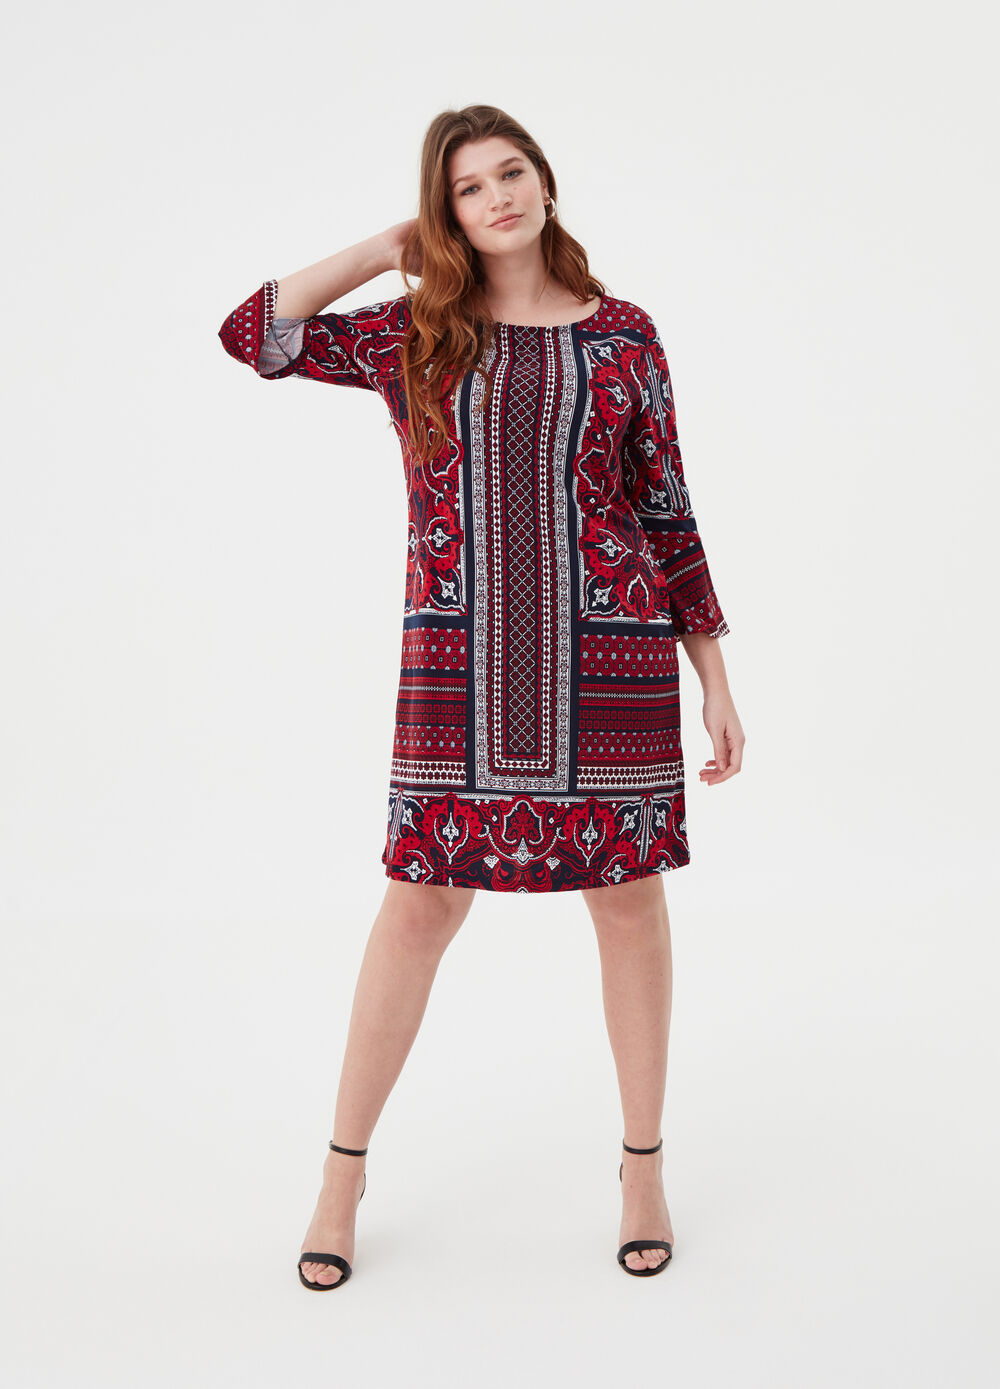 Curvy and Plus Size Women Clothing, Collection 2019